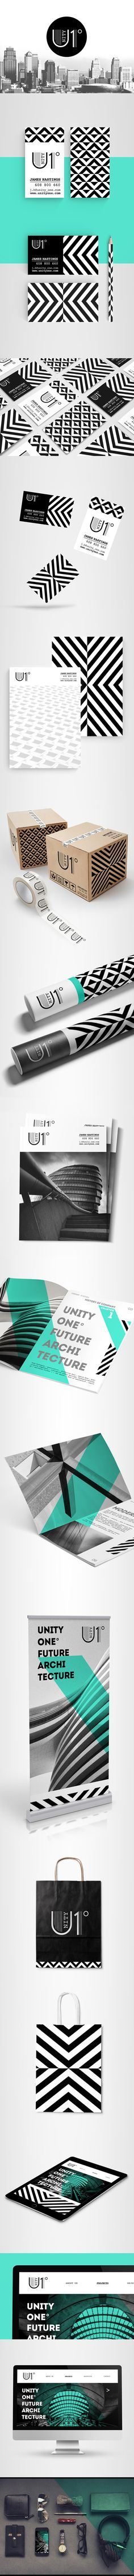 Identity created for modern architecture studio.